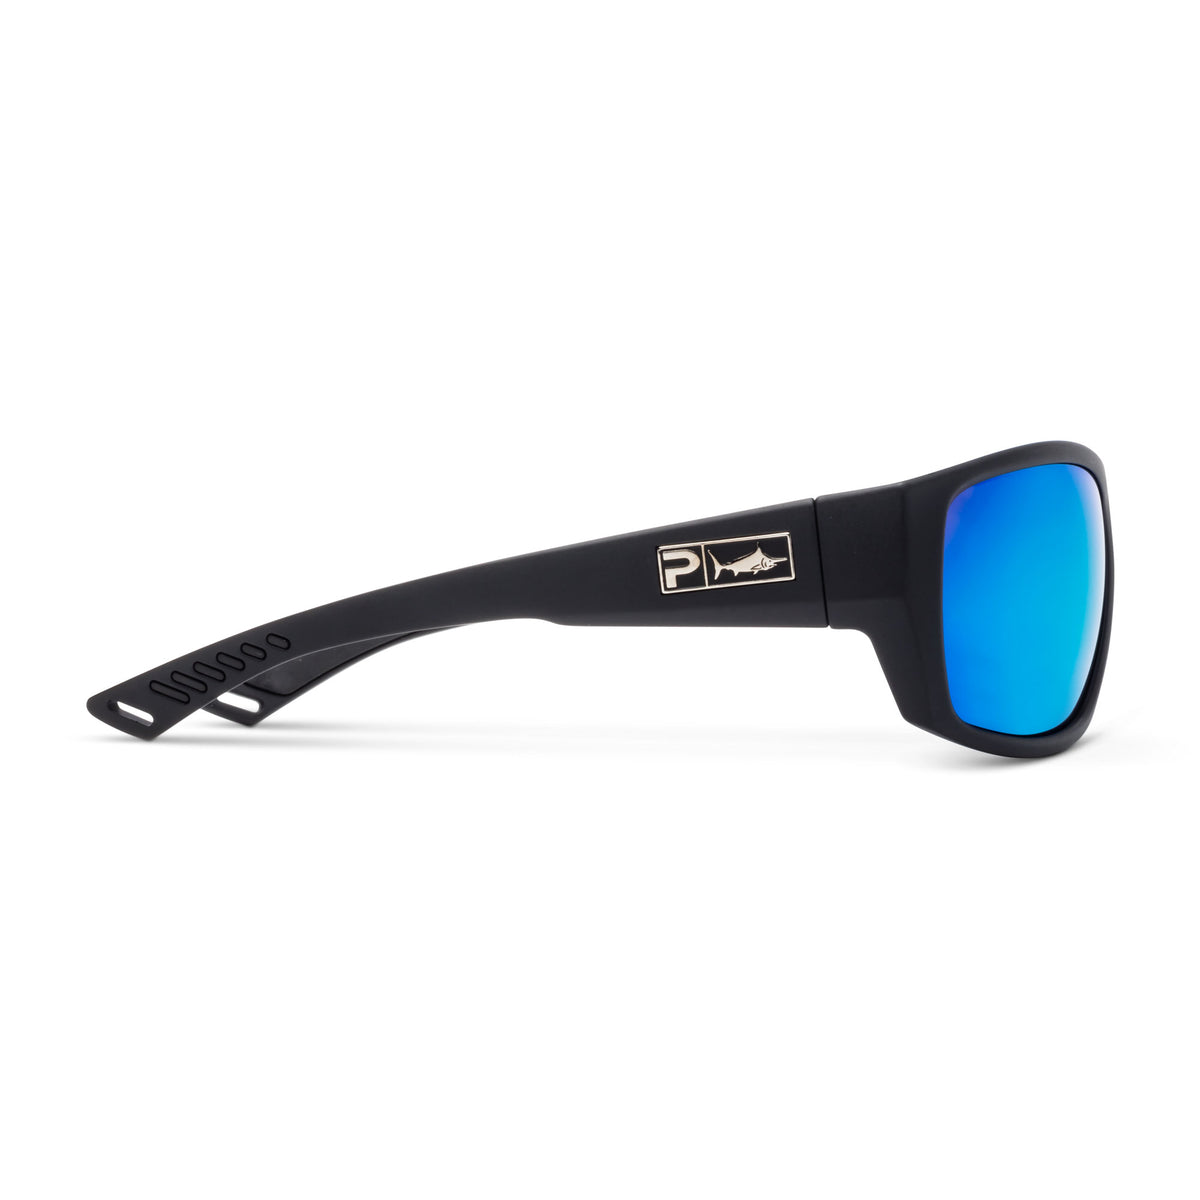 Pursuit - Polarized Polycarbonate Lens Big Image - 3